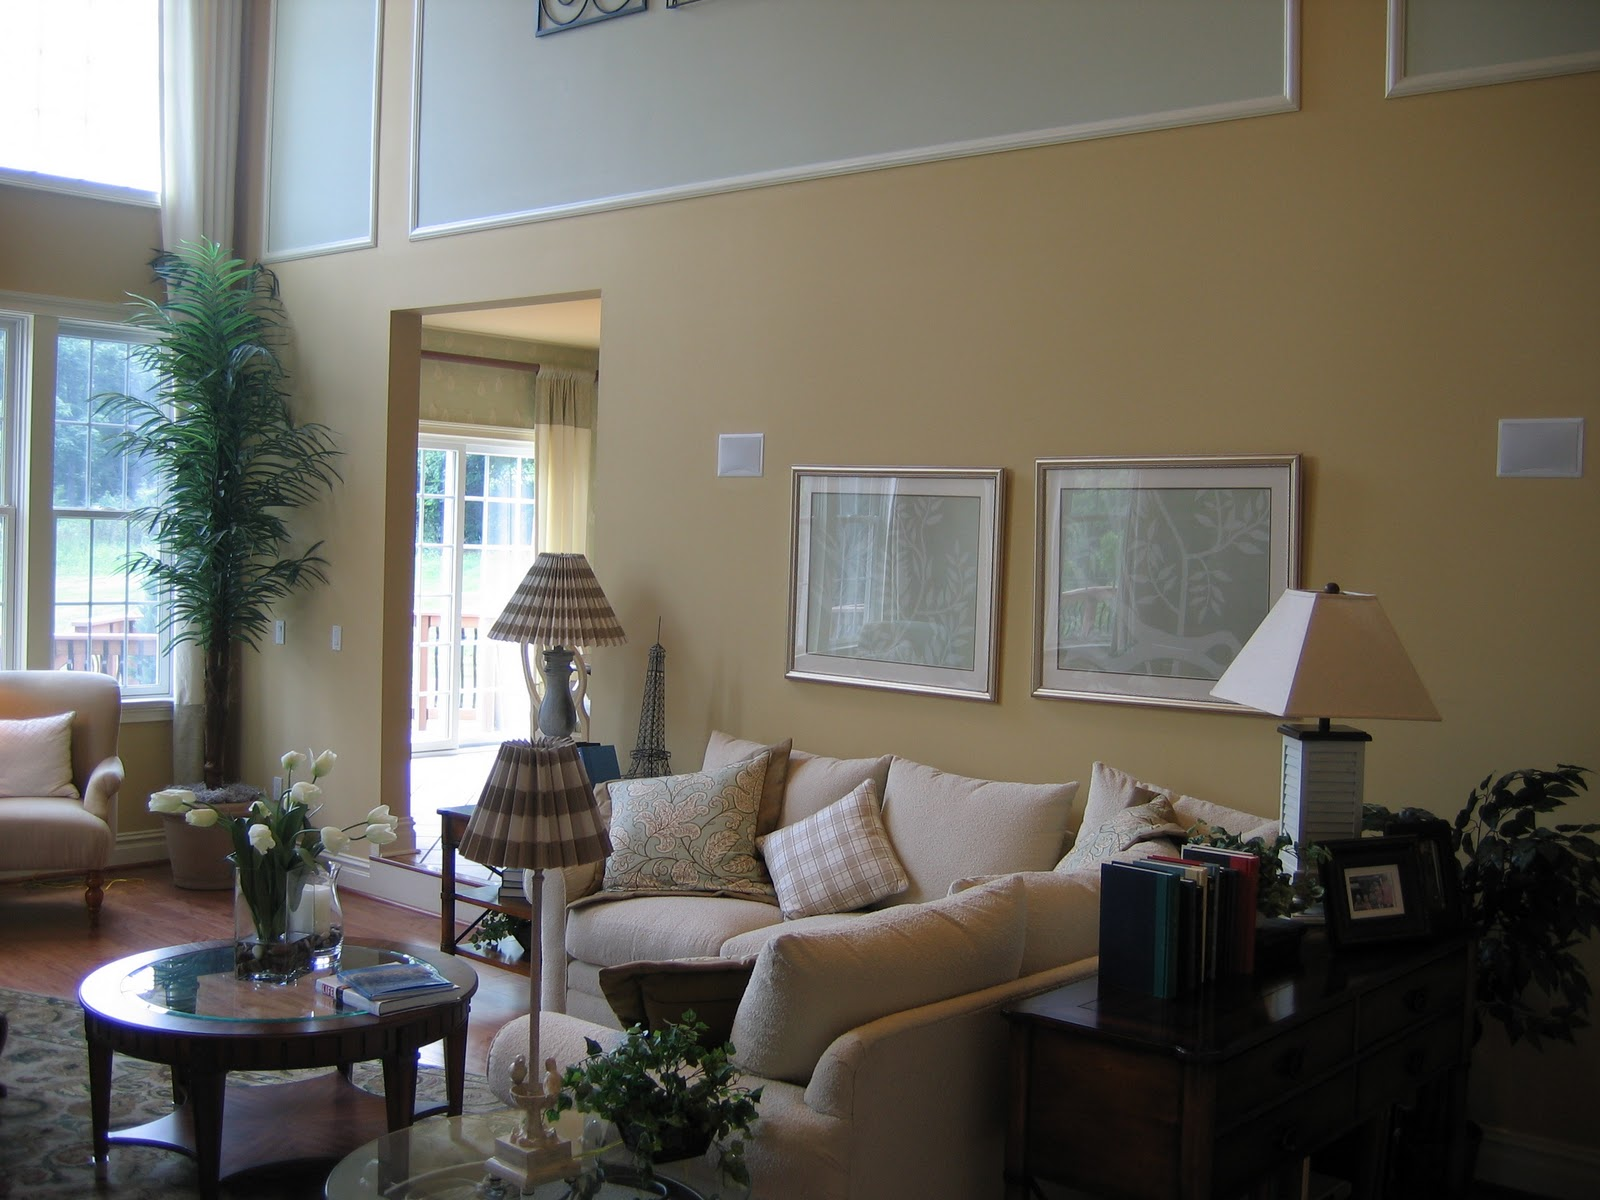 Diy by design family room ideas - Paint colors for great room ...